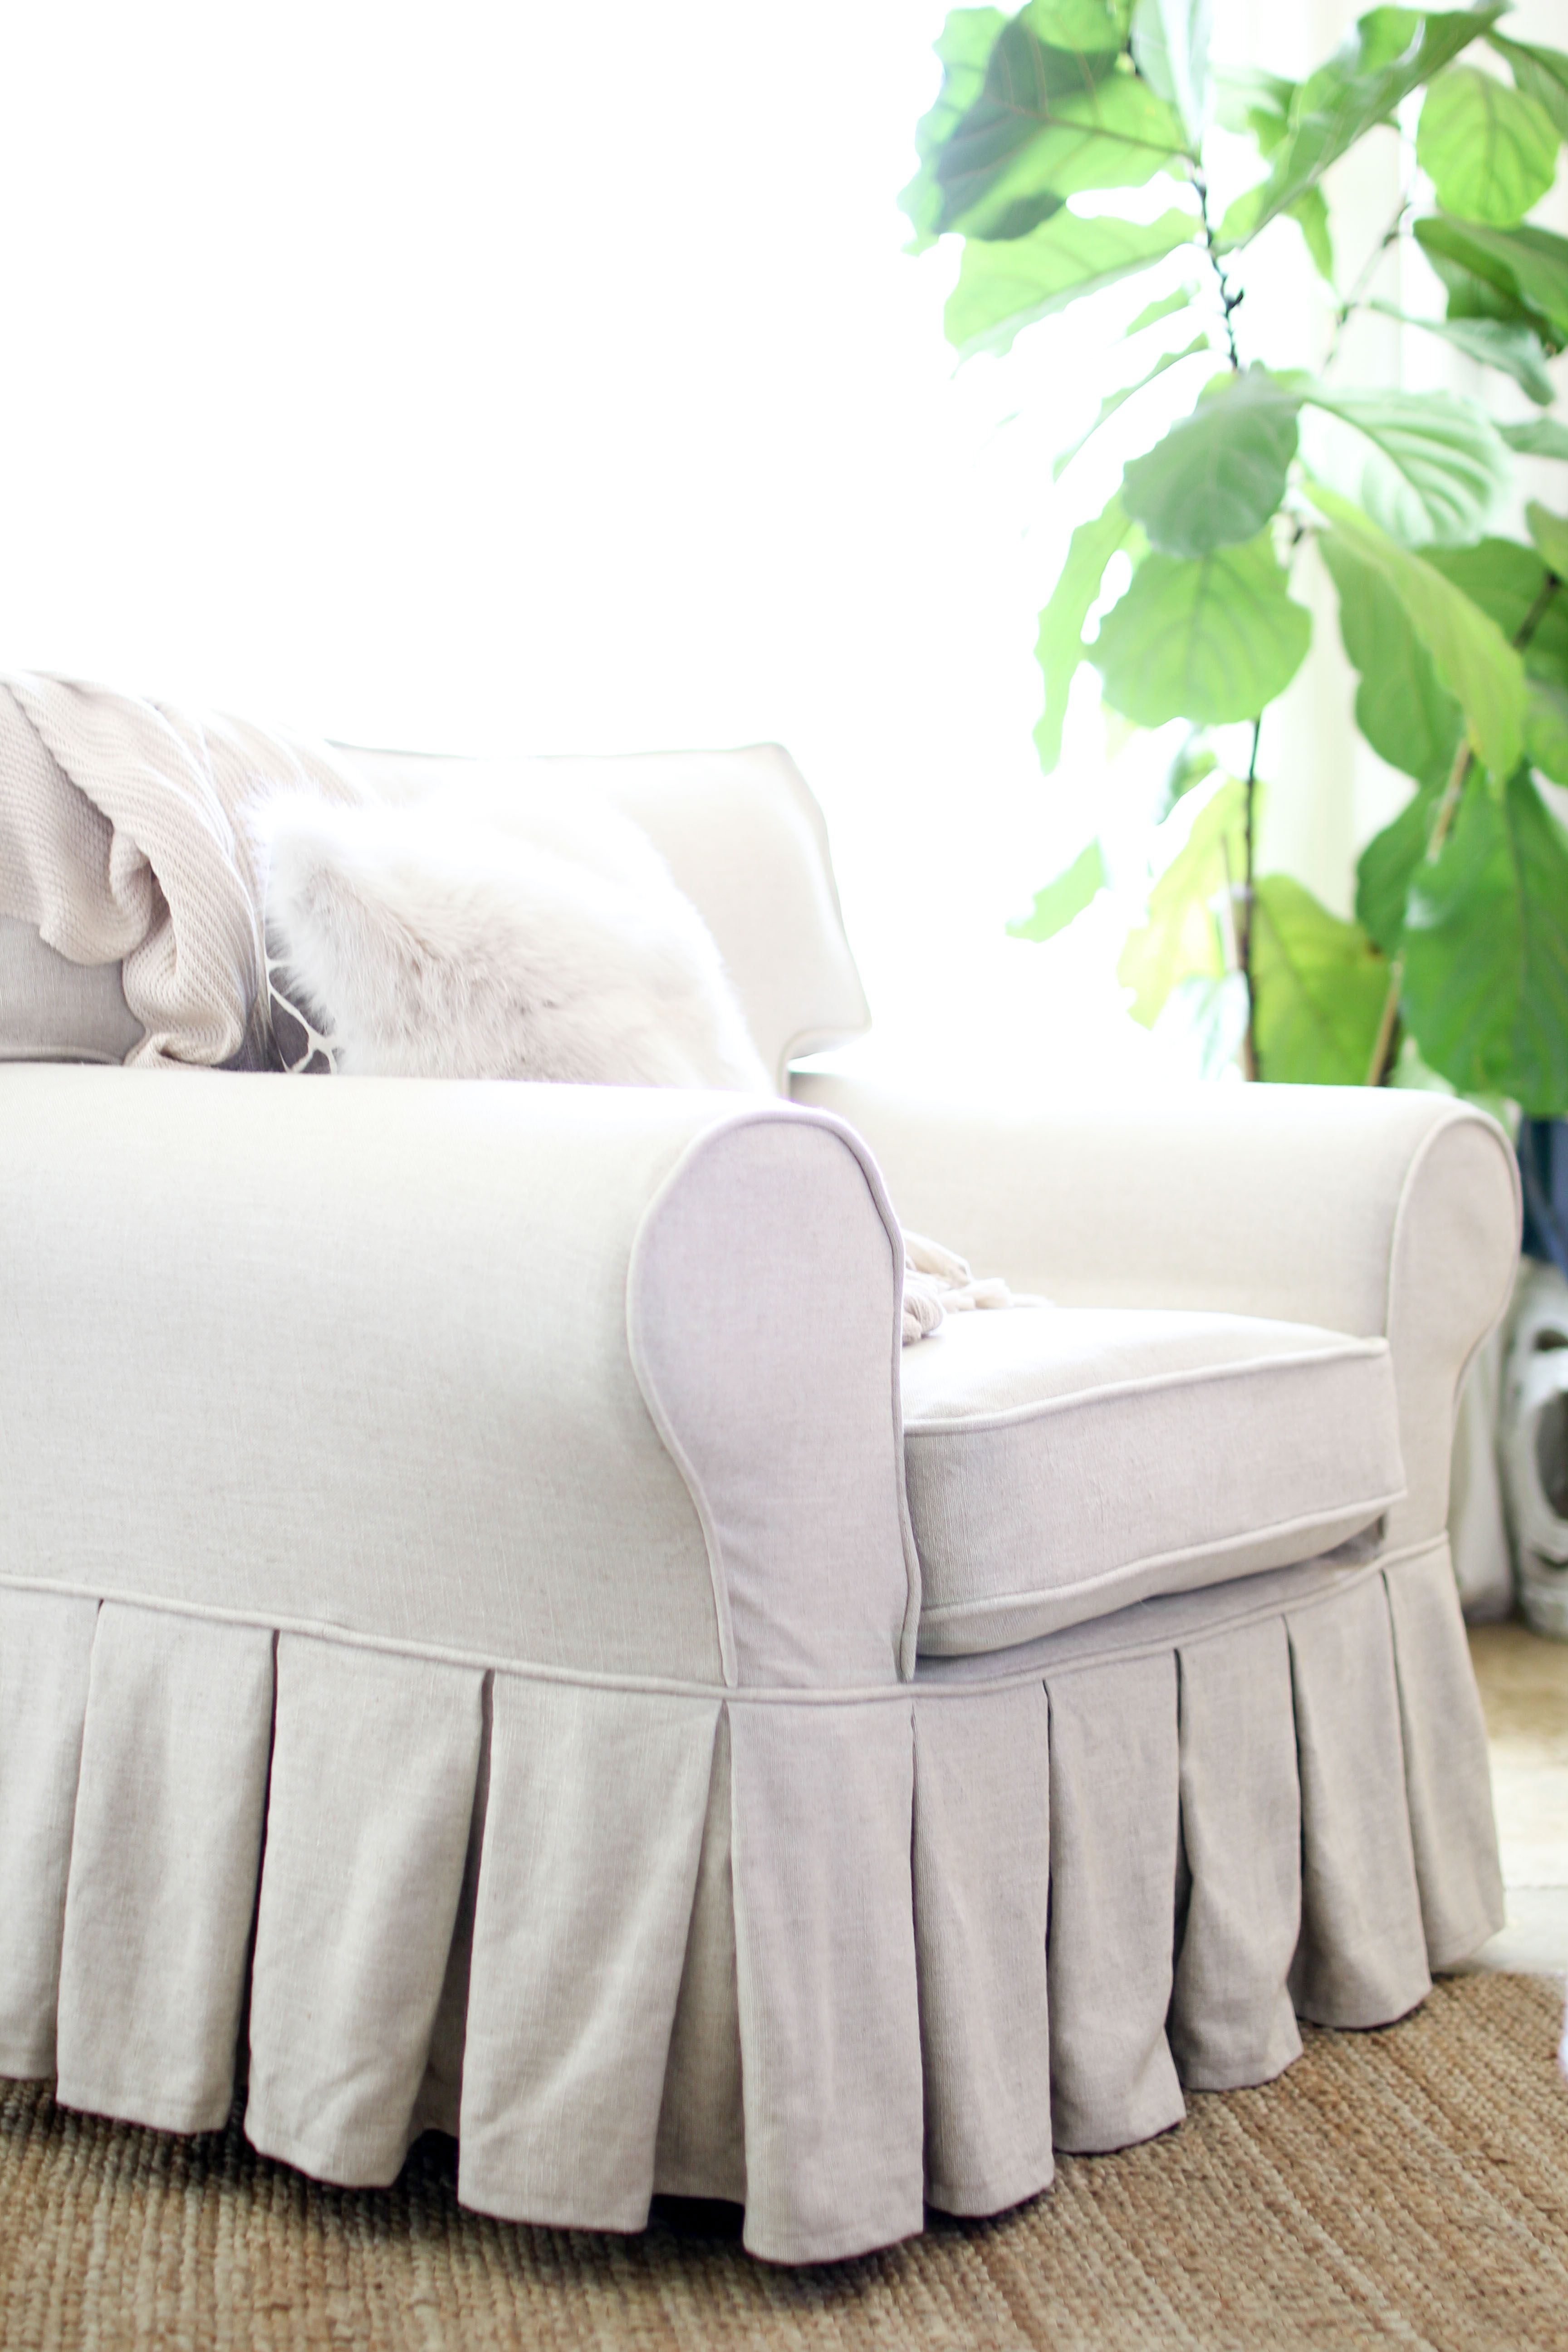 How to Buy Slipcovers Online The Ultimate Guide Armchair covers